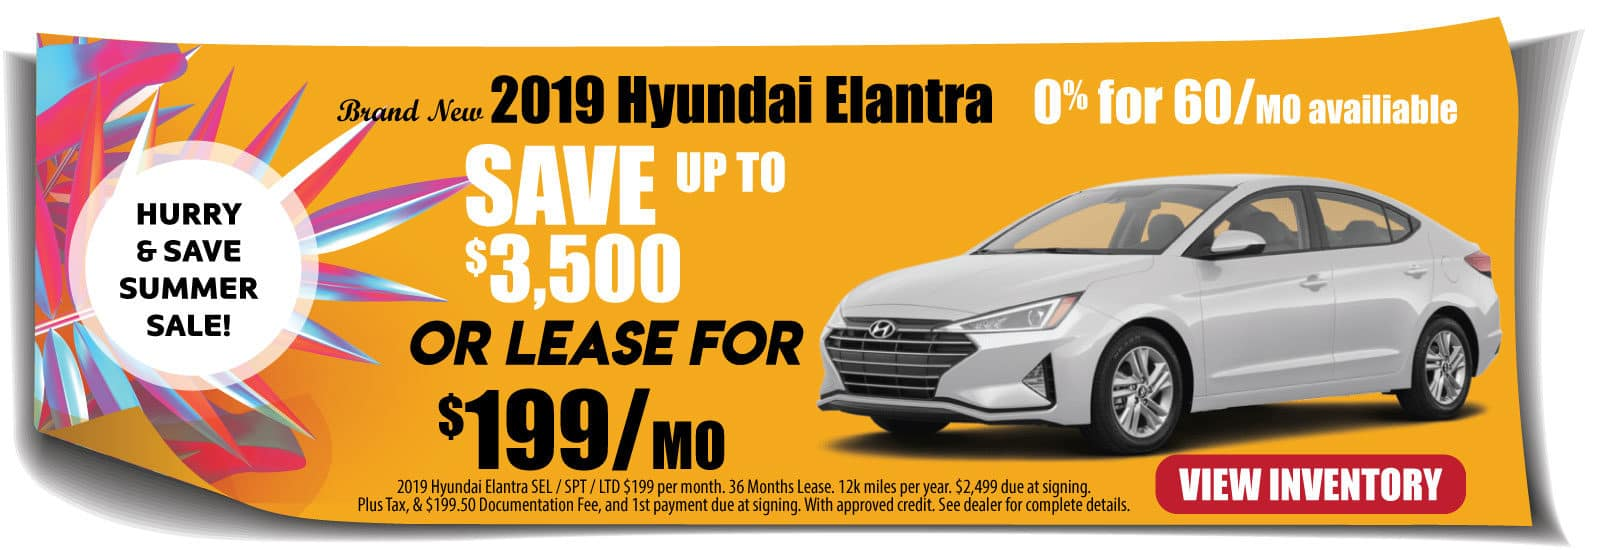 2019-Hyundia-Elantra-July-2019-Offer